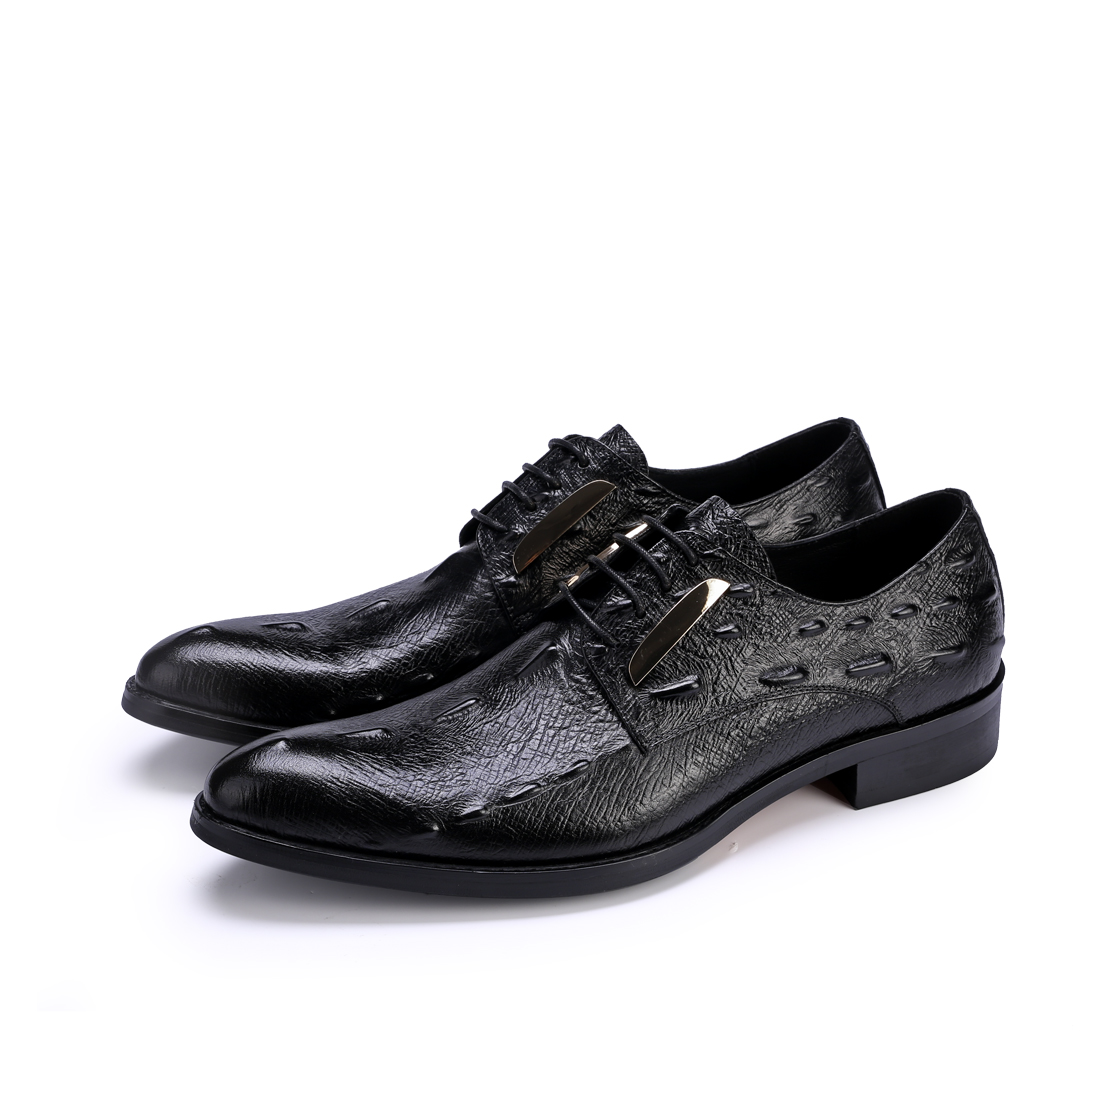 Men's Shoes Mens Genuine Leather Gentleman Dress Shoes Sequins Derby Cowhide Leather Embossed Skin Wedding Business Shoes 2018 Formal Shoes